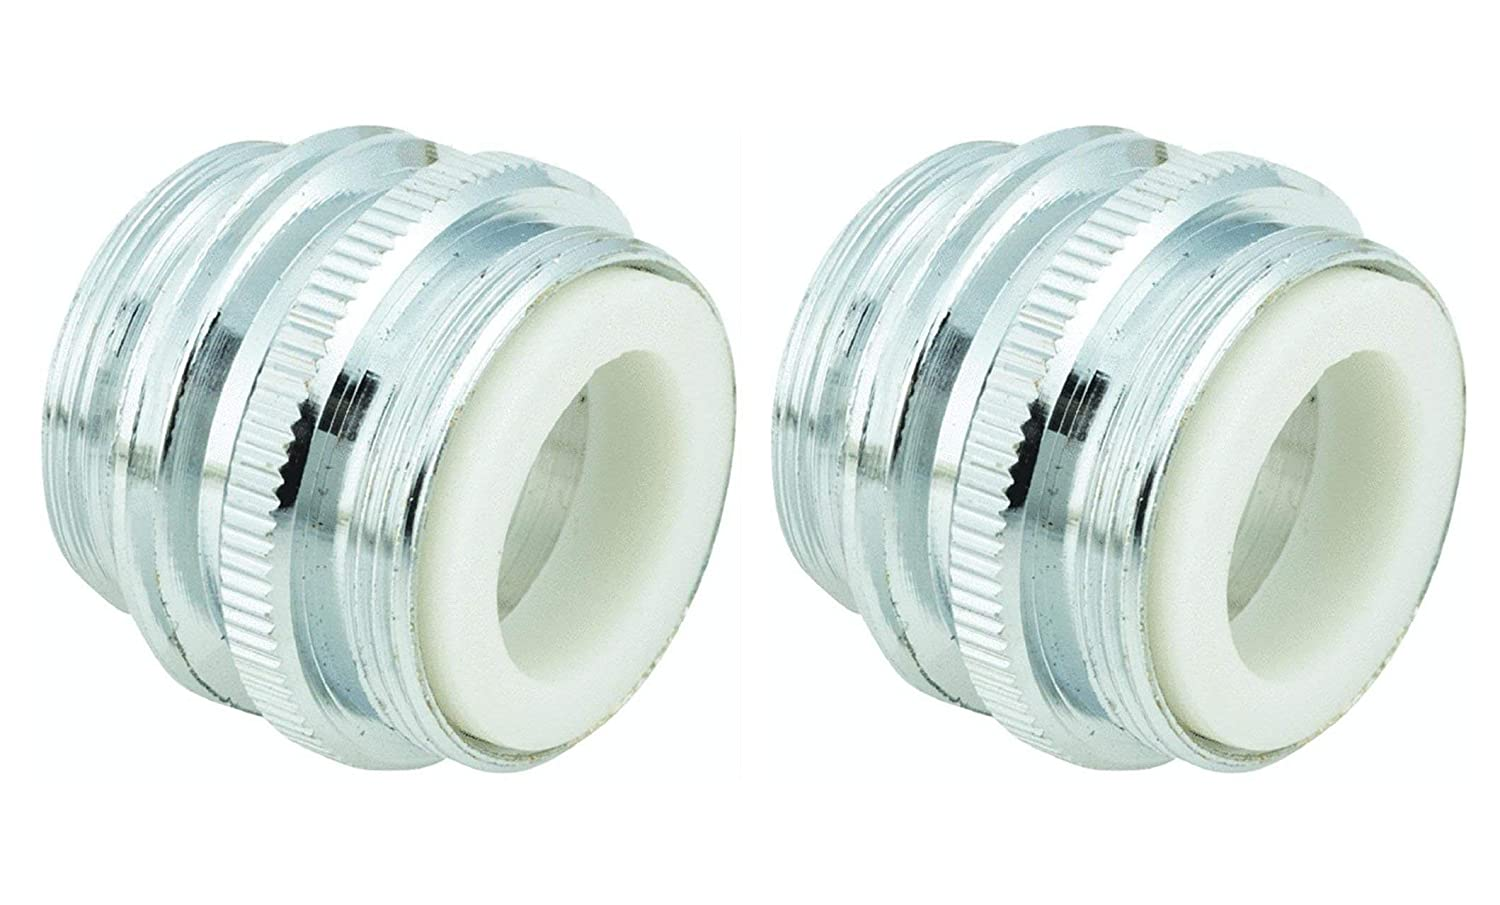 Dib Gs 437476 1 X Do it Dual Thread Faucet Adapter To Hose: Faucet ...